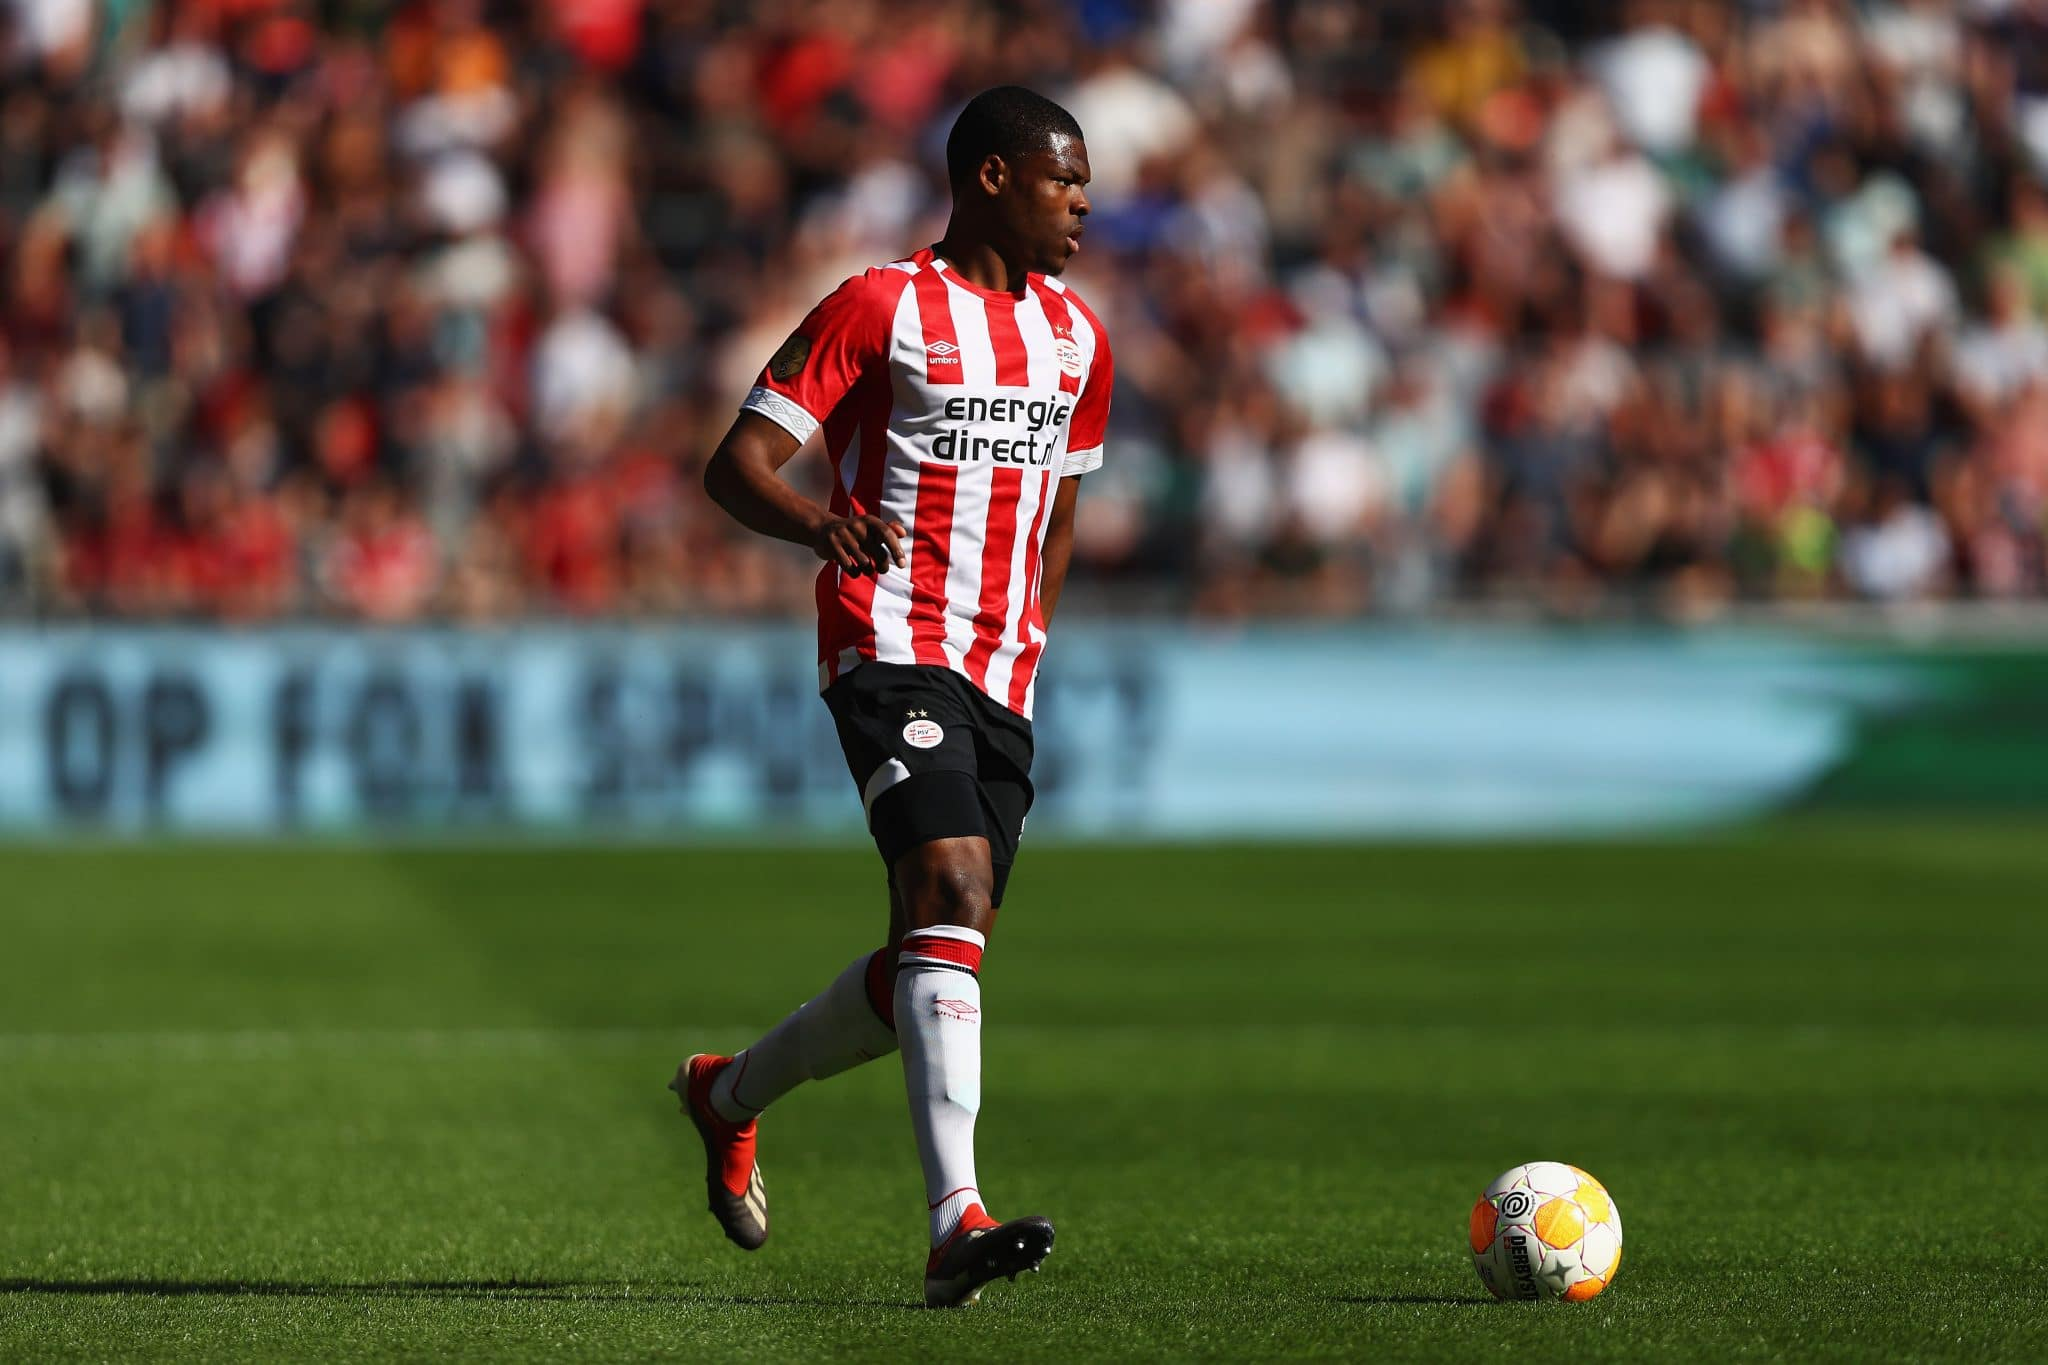 Potential Manchester City target Denzel Dumfries in action for PSV. Could he be an alternative to João Cancelo?